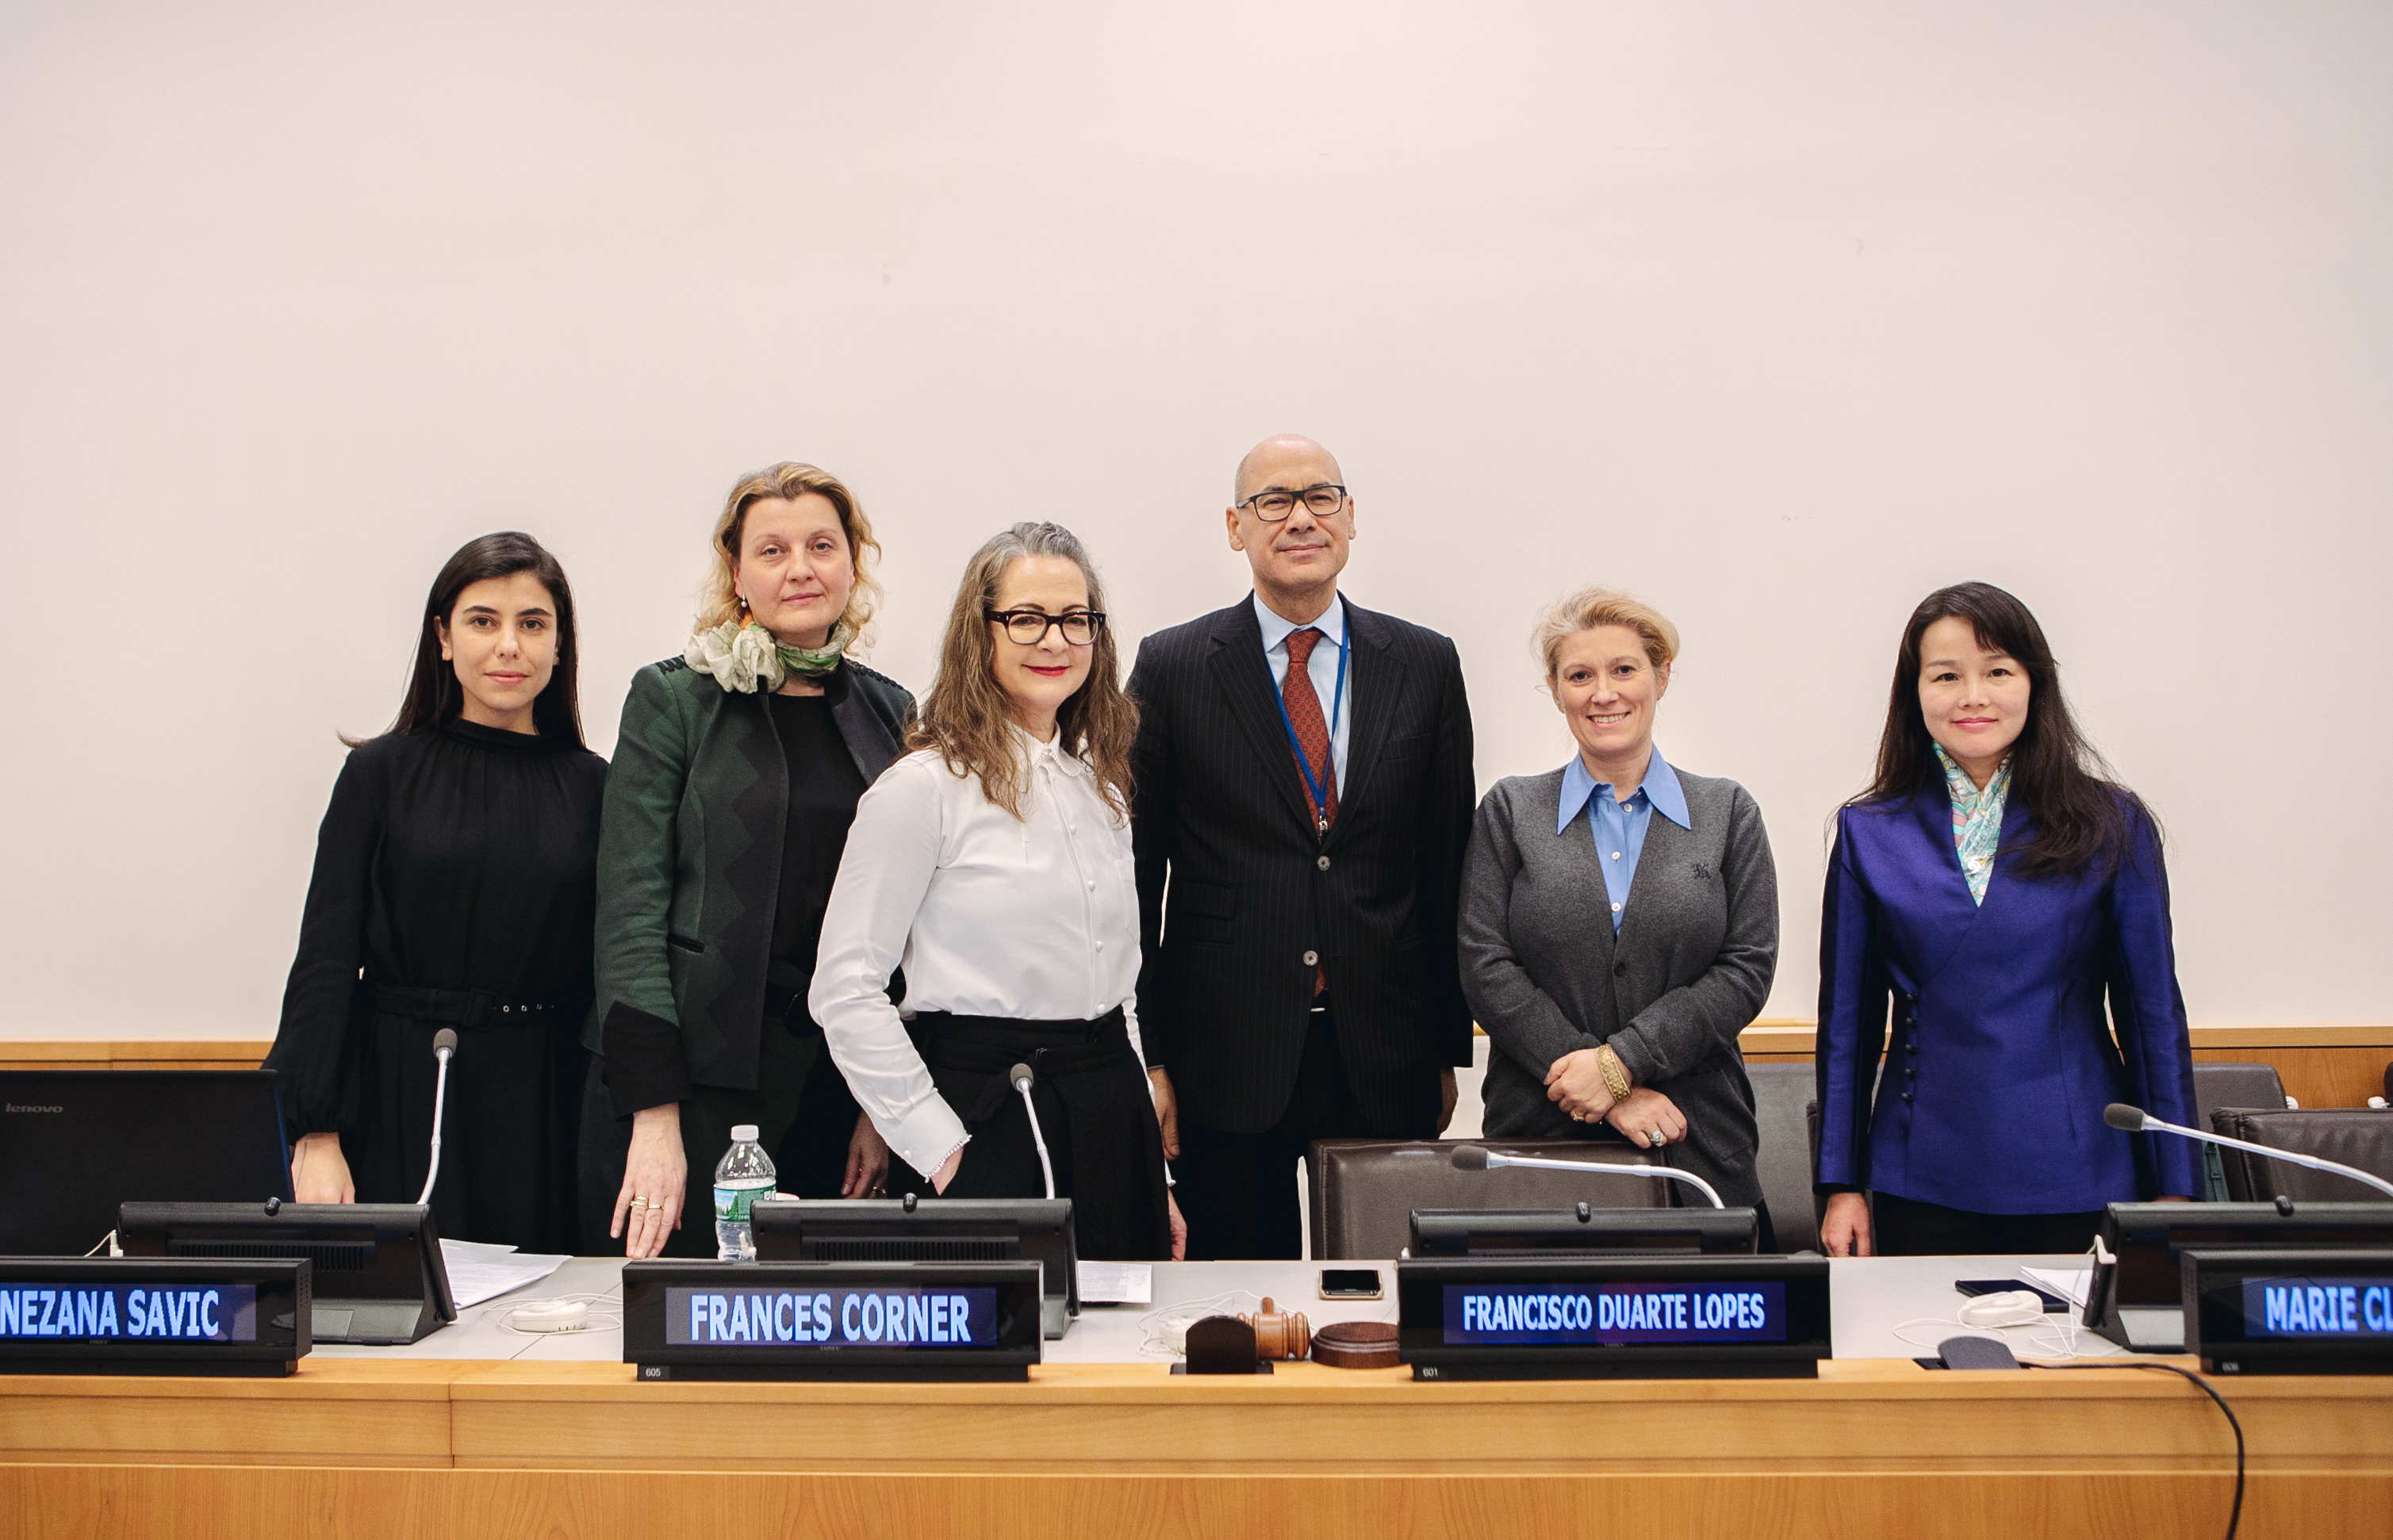 Professor Frances Corner and panelists and the UN